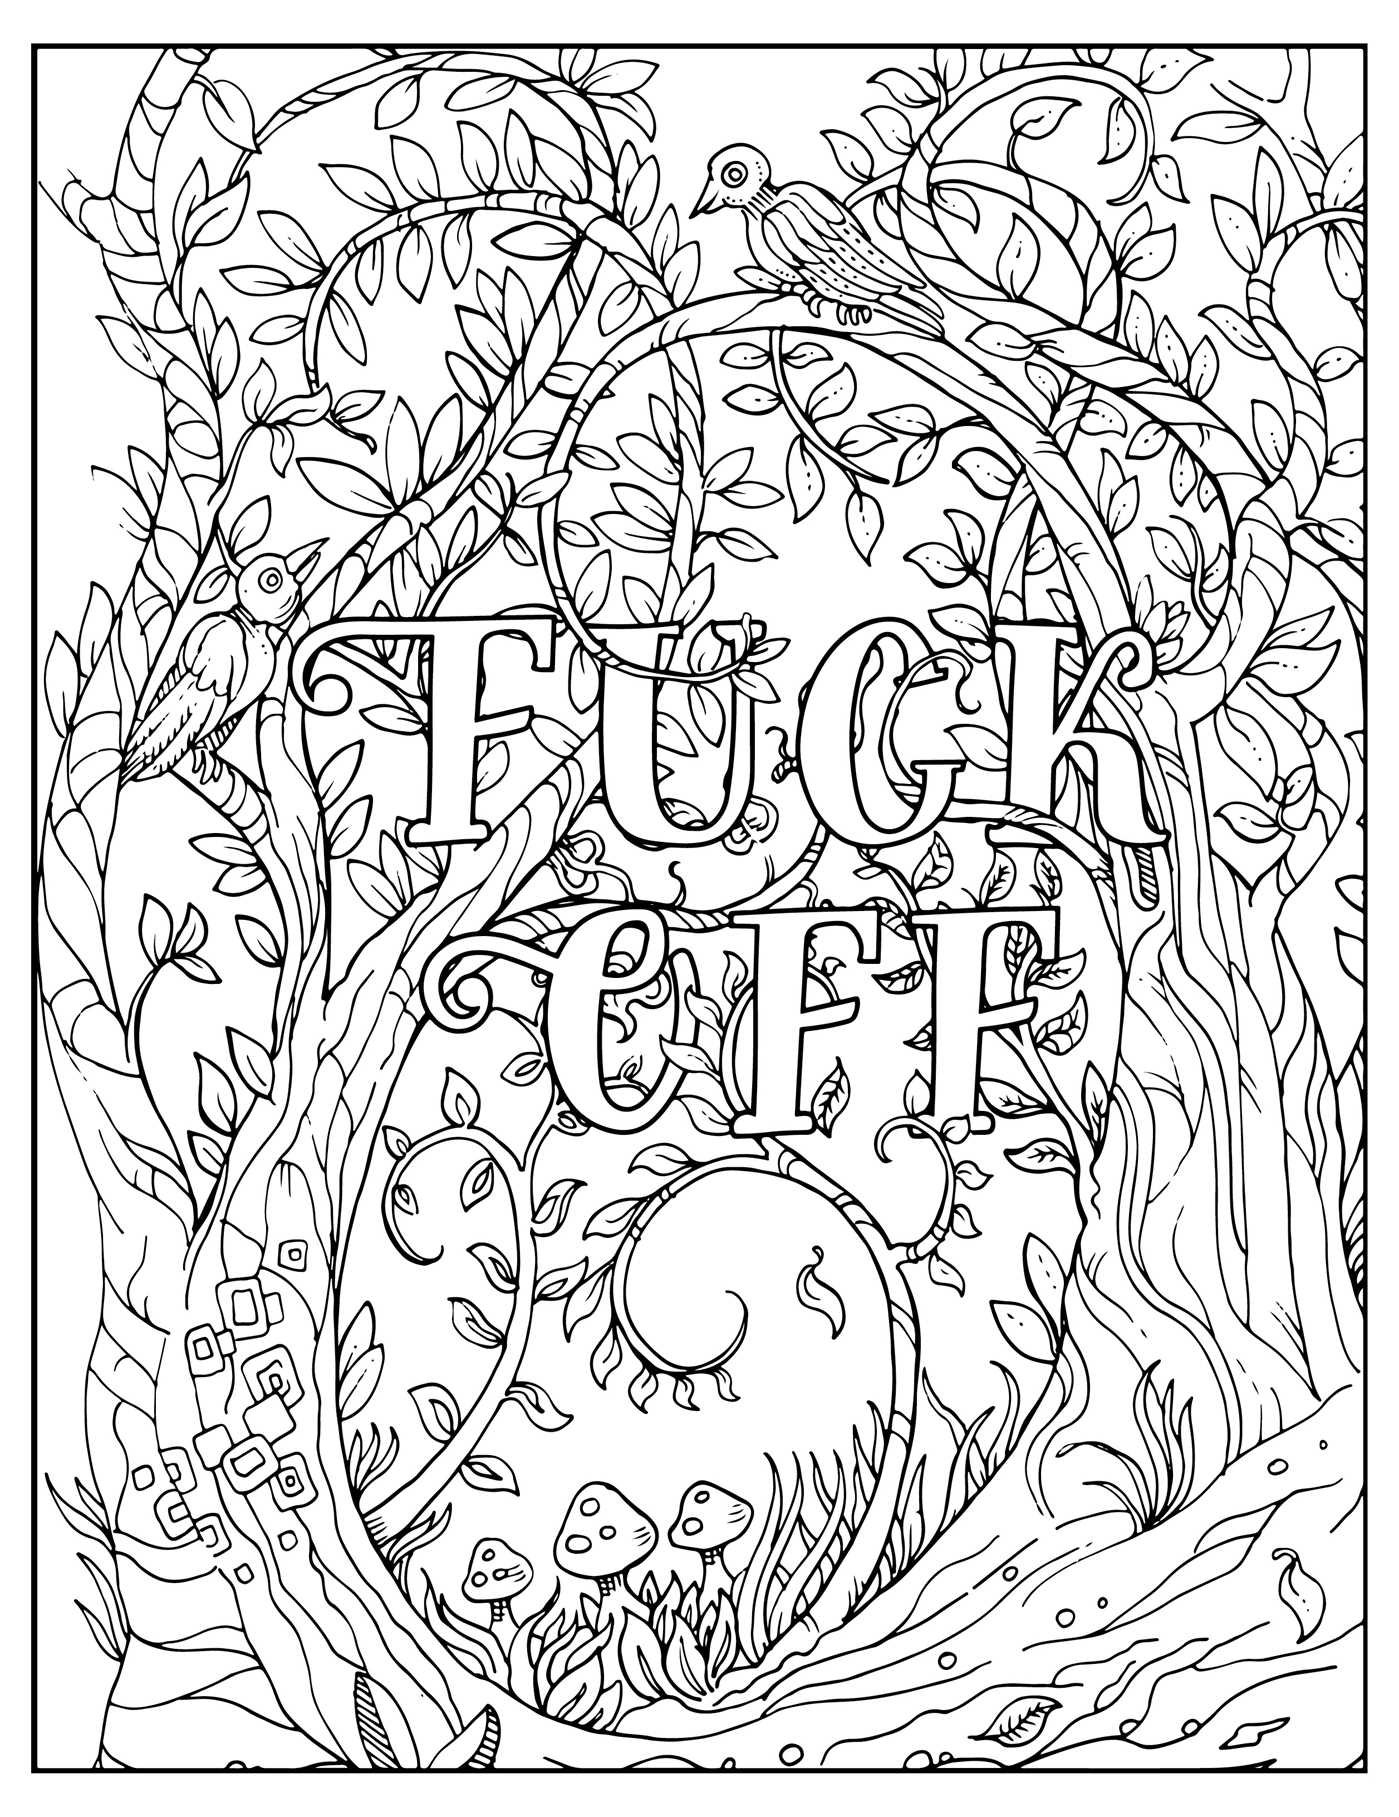 The Best Free Swearing Coloring Page Images Download From 60 Free